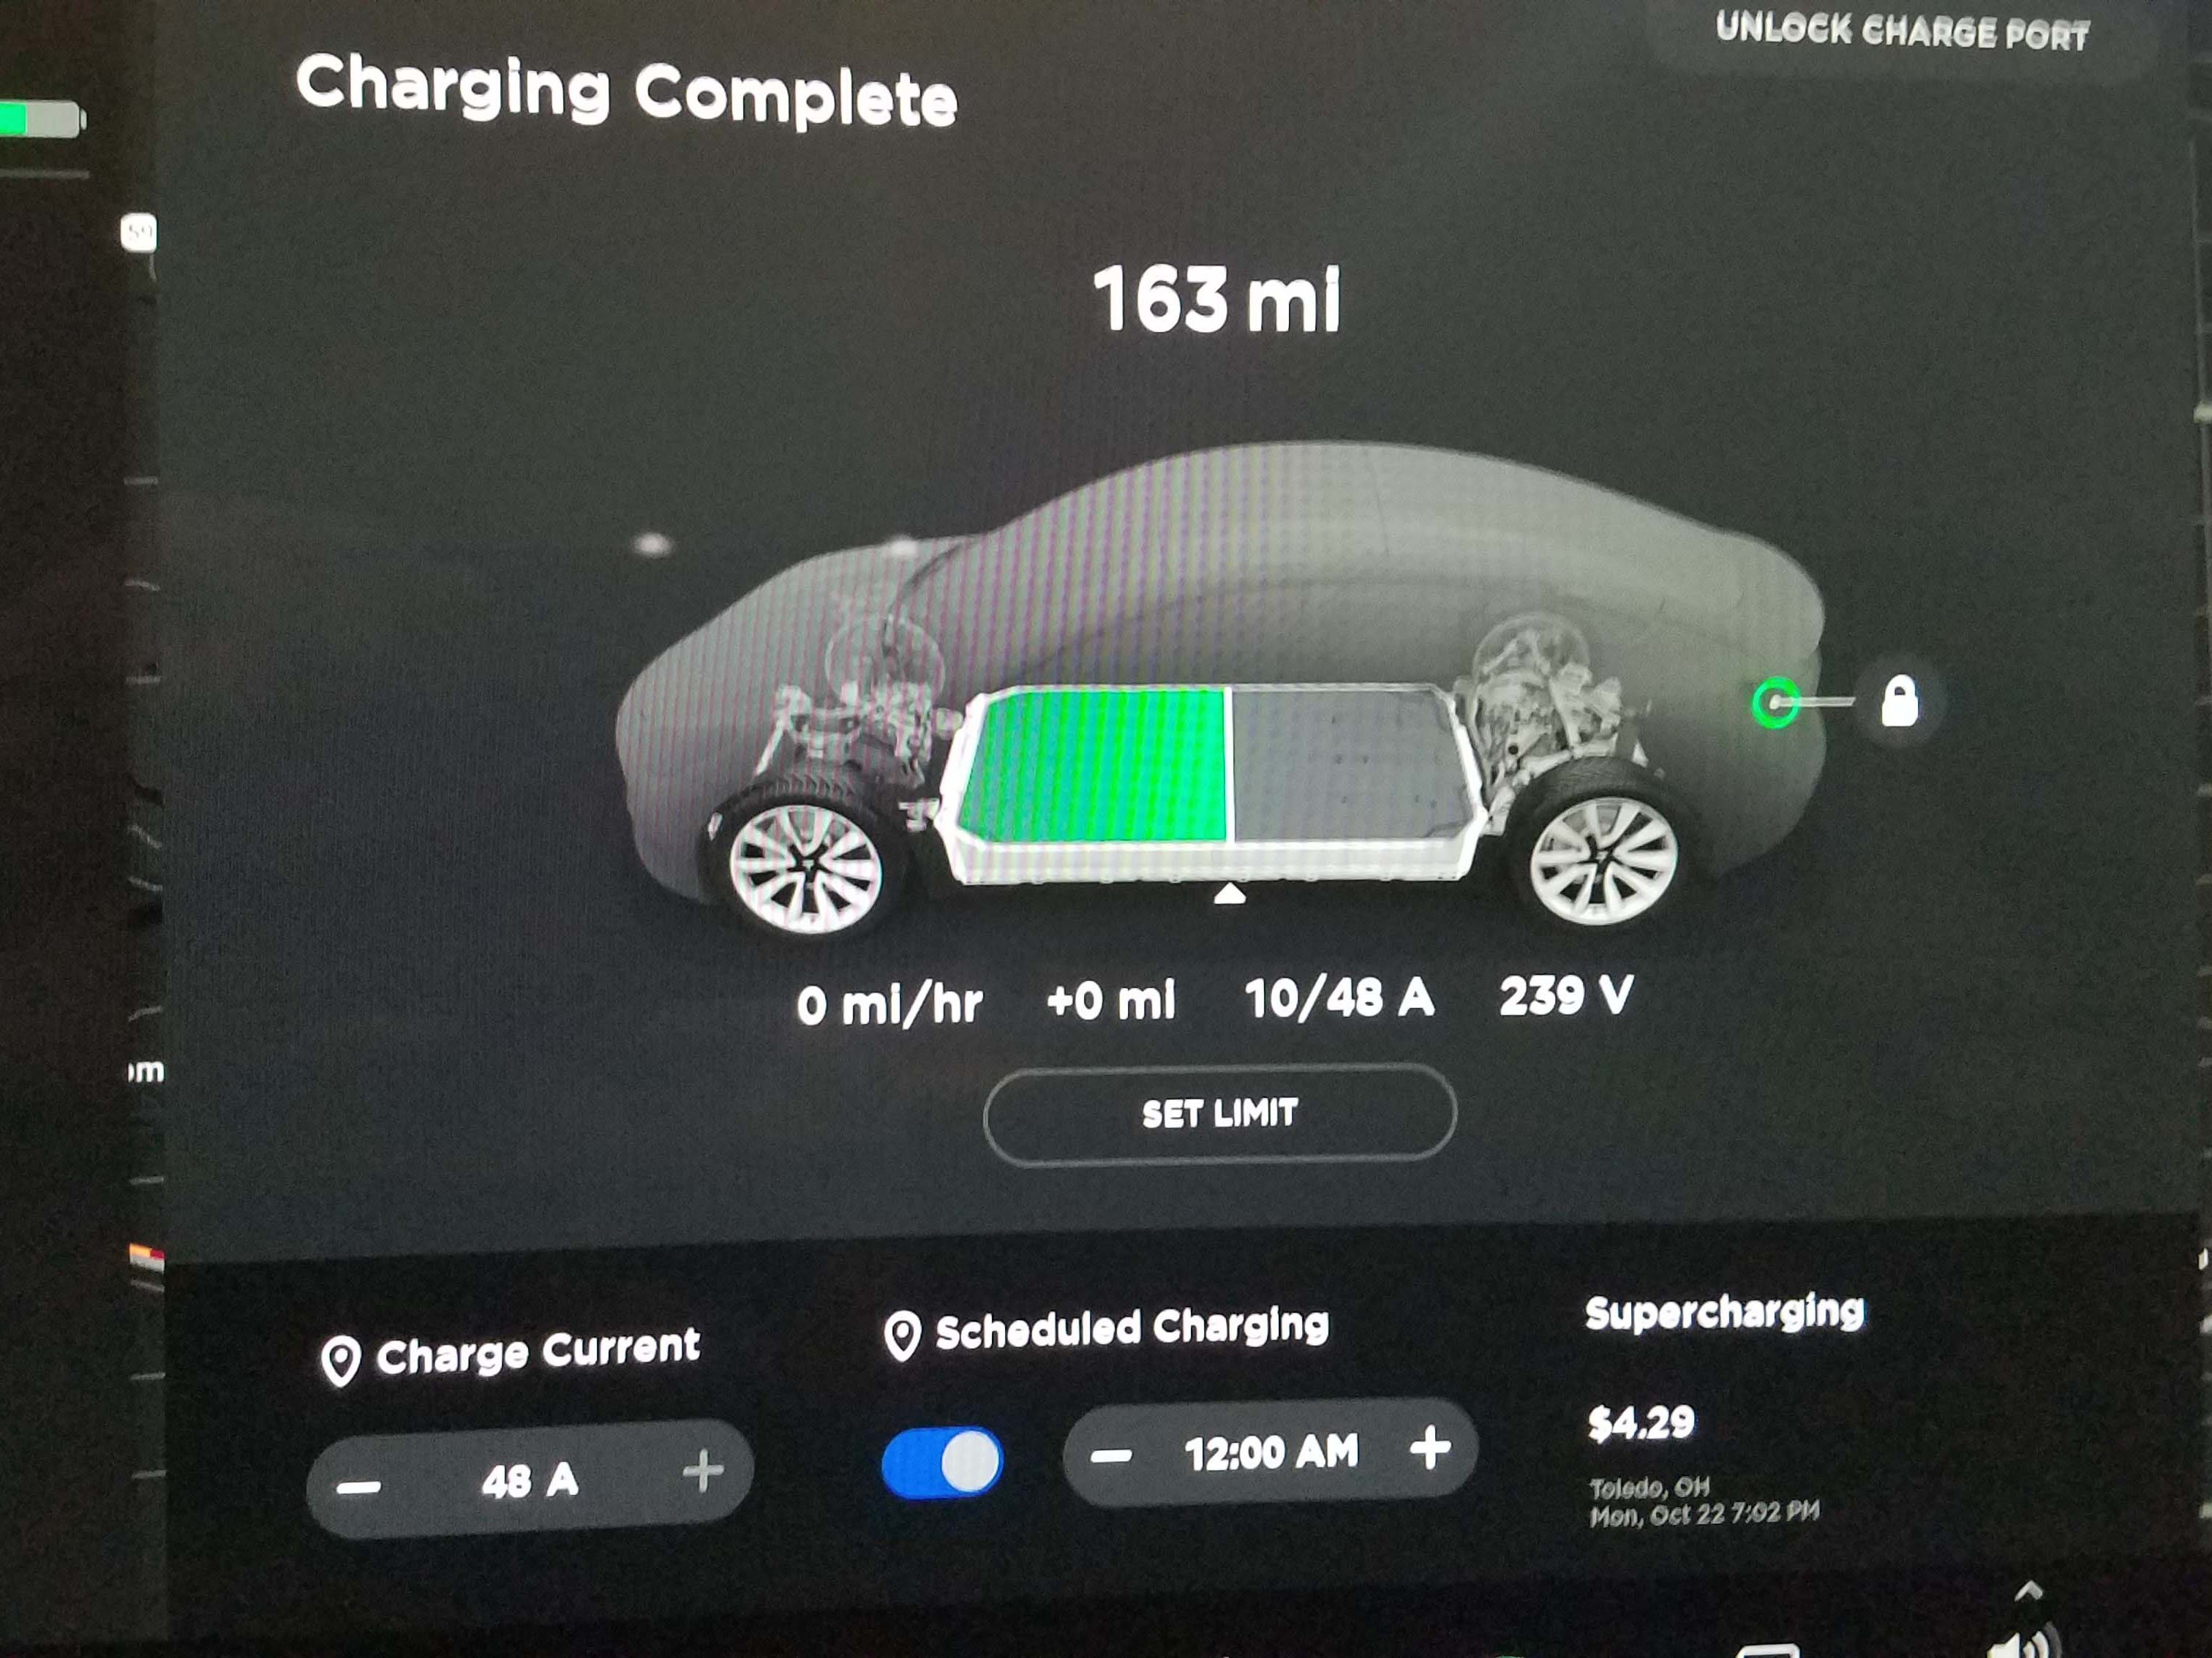 Charging for the Tesla Model 3 can be set automatically. It can also be controlled remotely via a phone app.